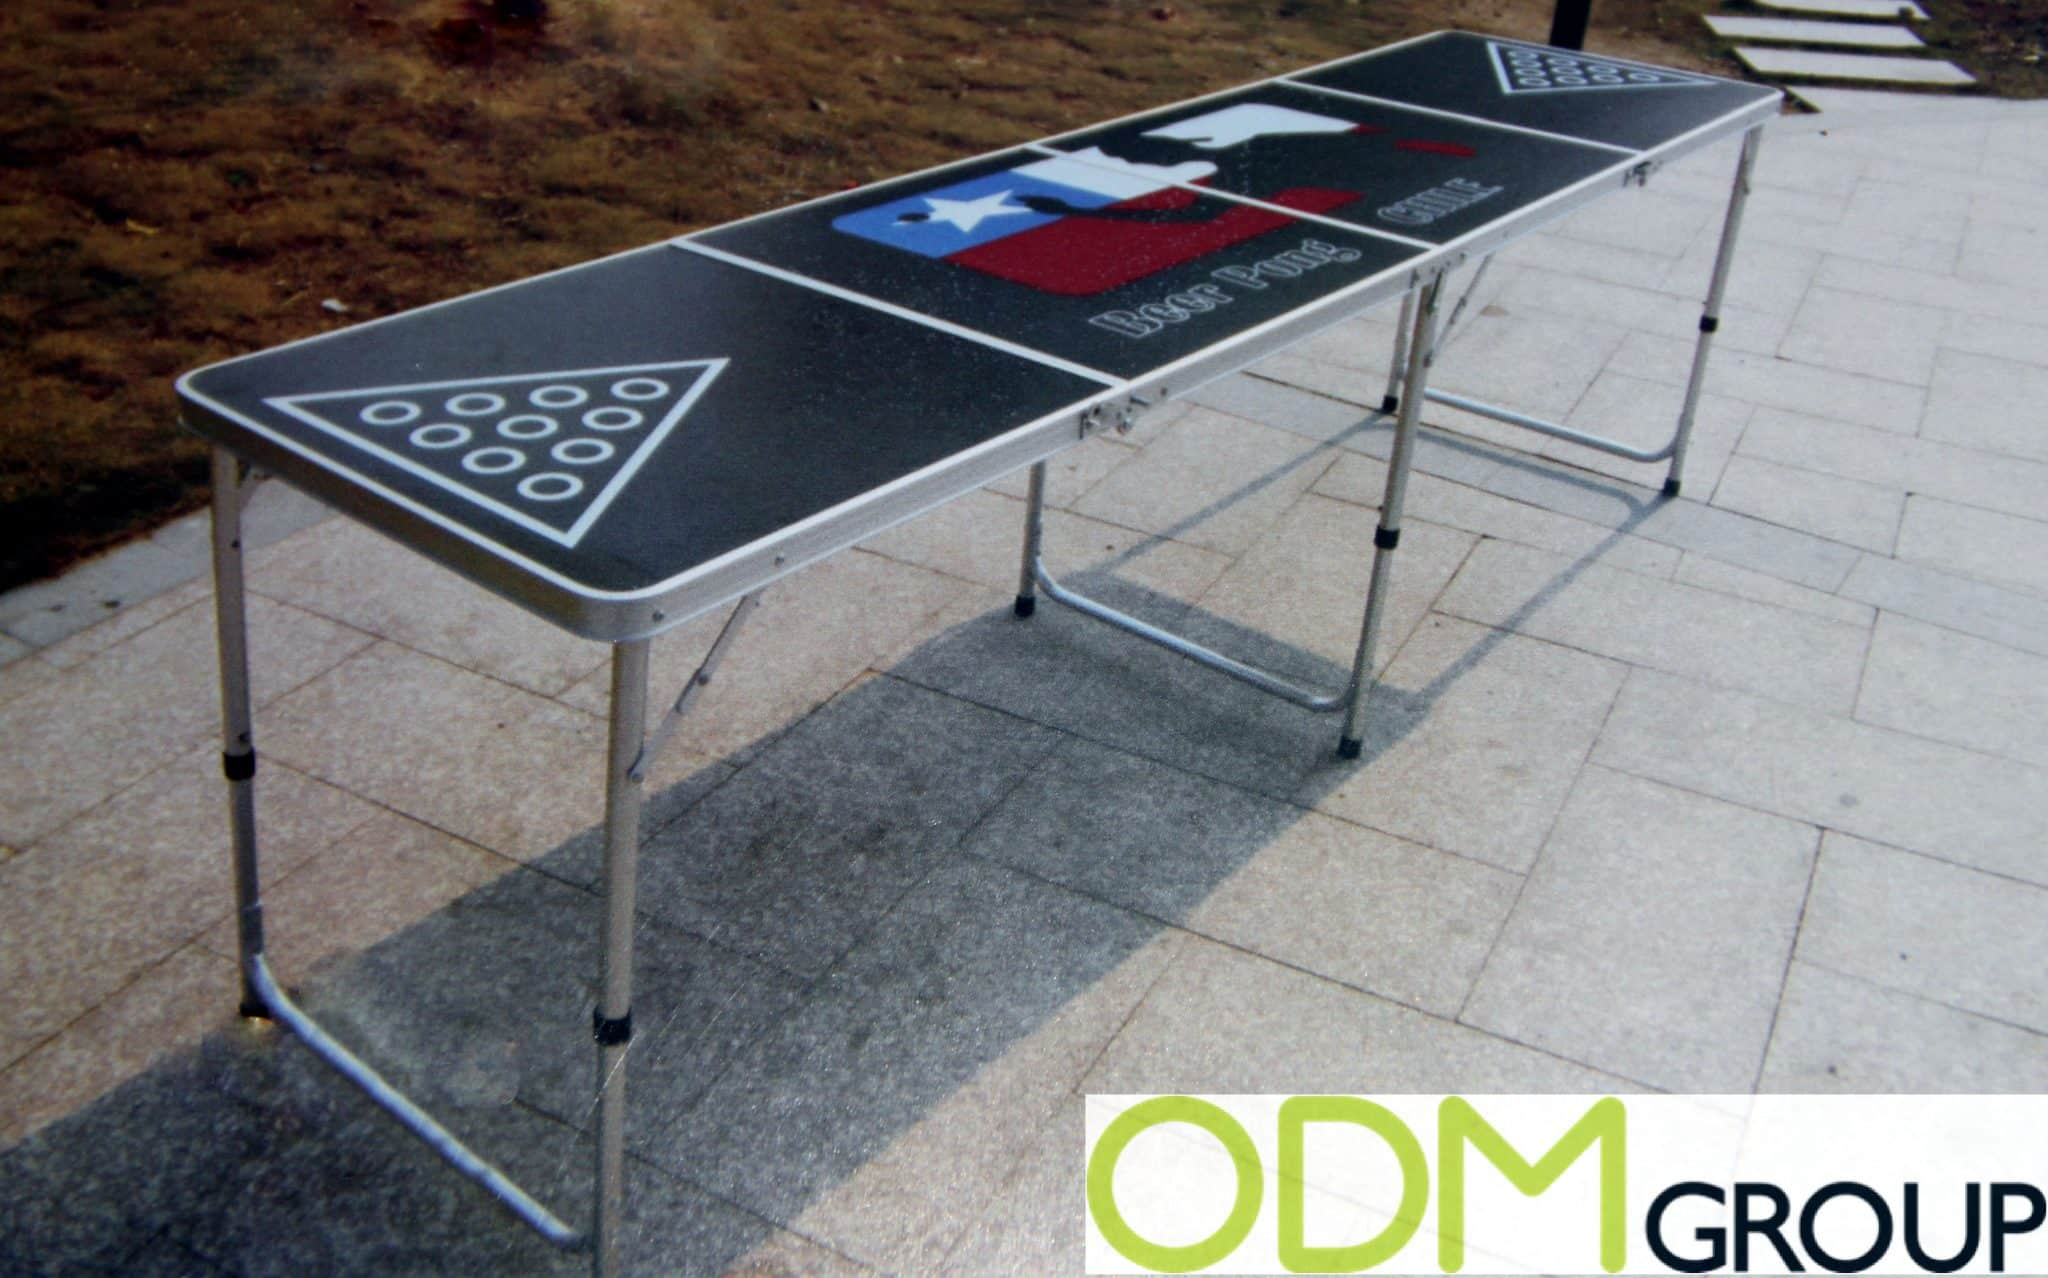 Terrific Unique Promotional Ideas Branded Beer Pong Table Download Free Architecture Designs Scobabritishbridgeorg